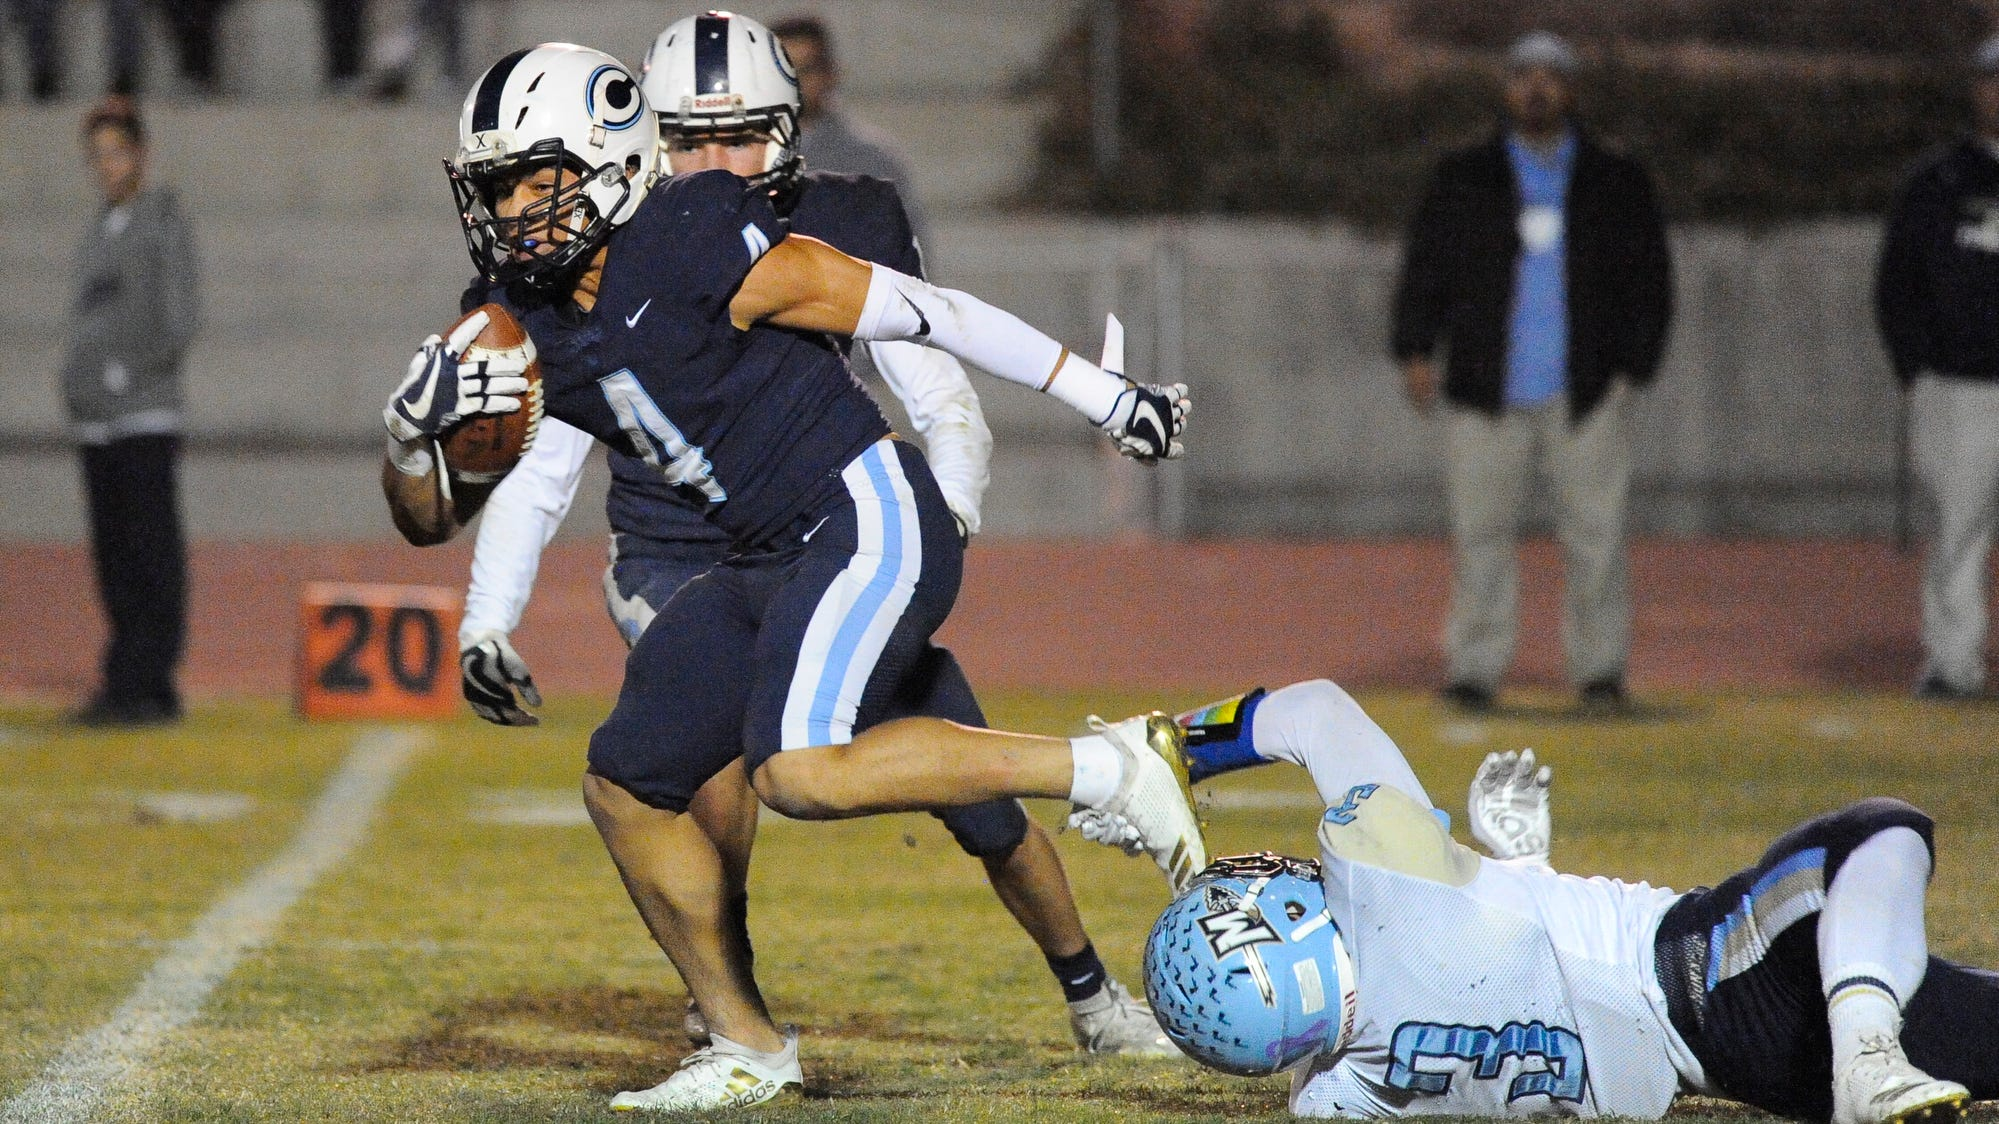 CVC scored nine touchdowns in the first half. Find out how.